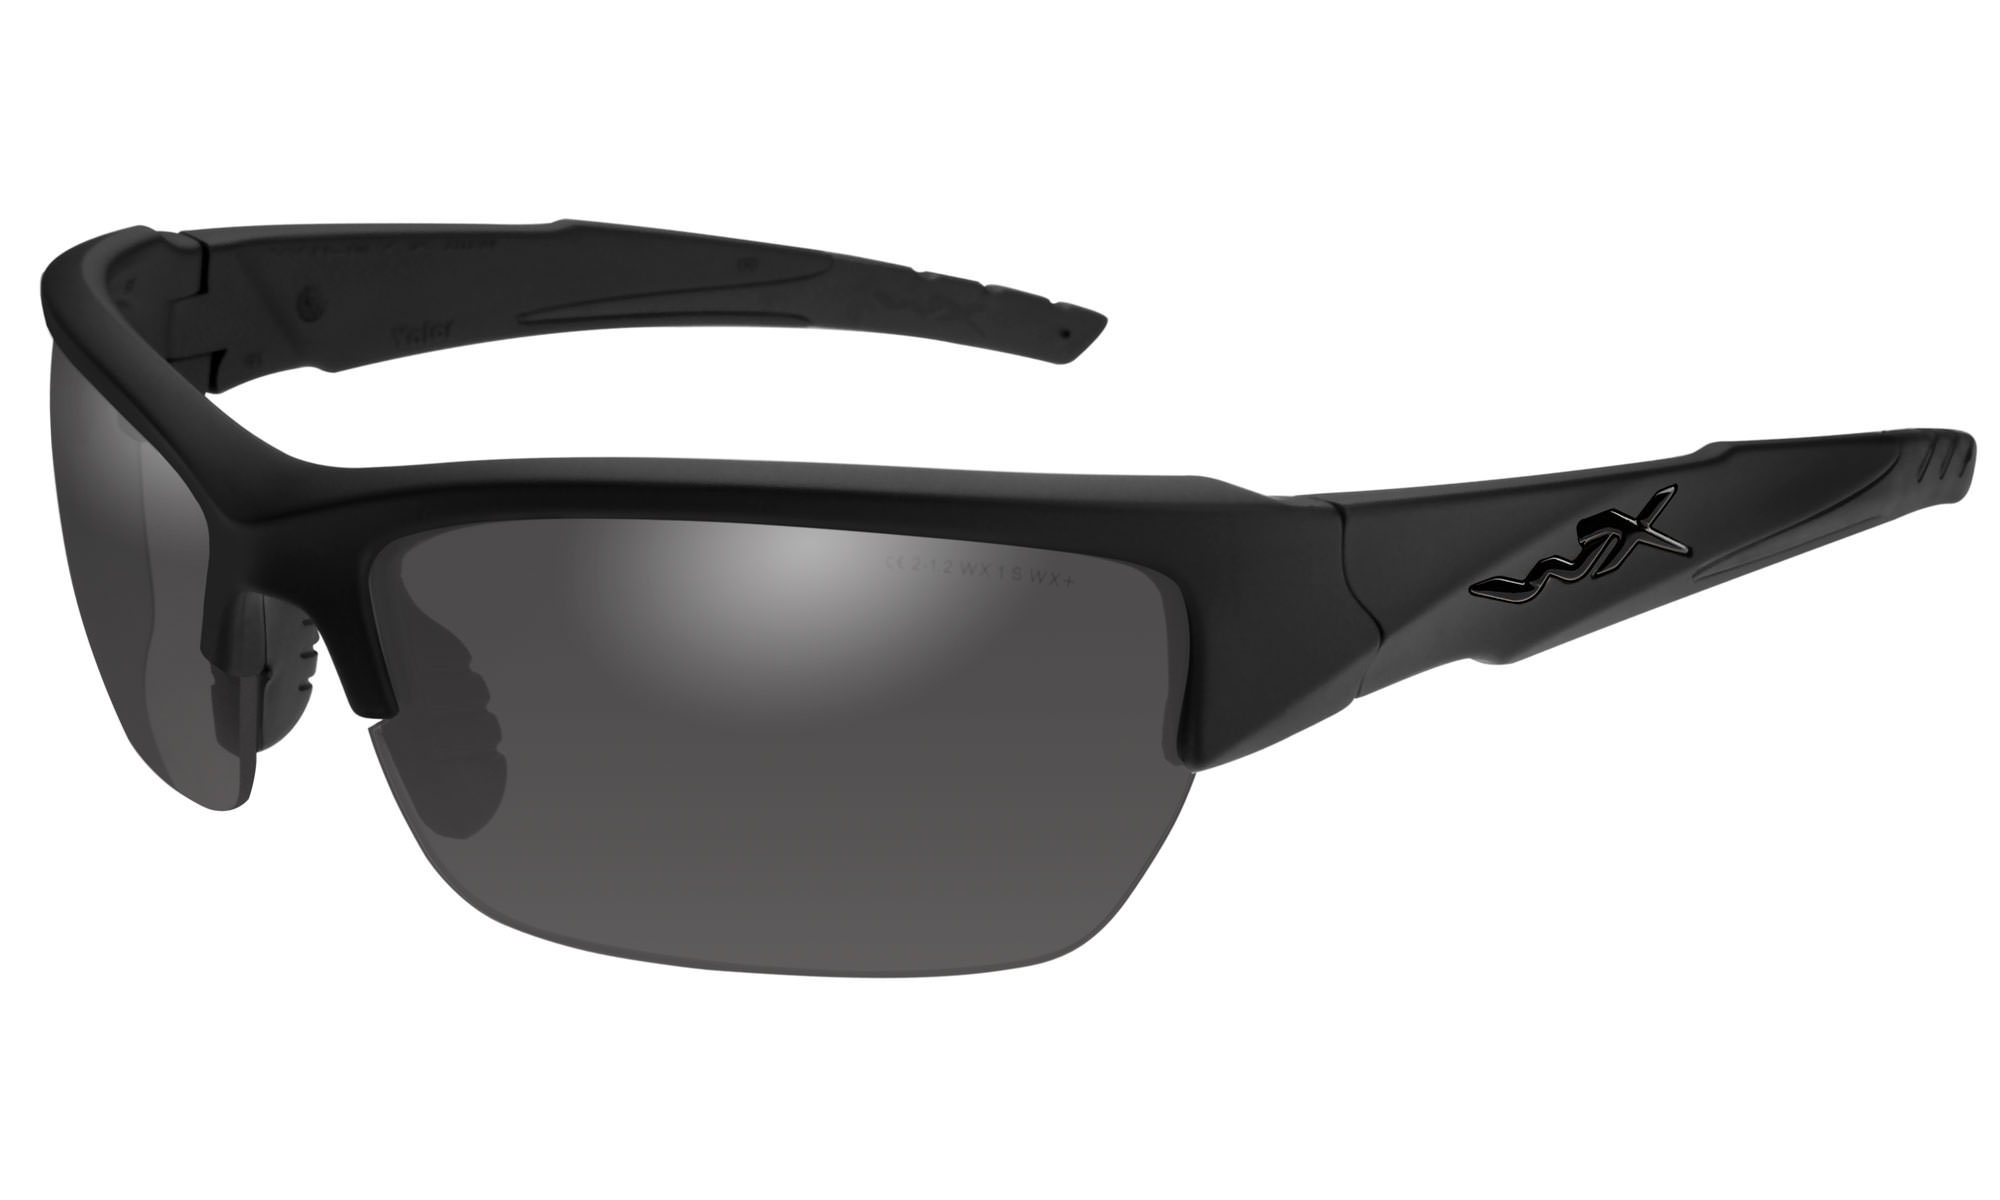 606204abc1a7 Wiley-X WX Valor Matte Black with Smoke Grey Lenses | Wiley X